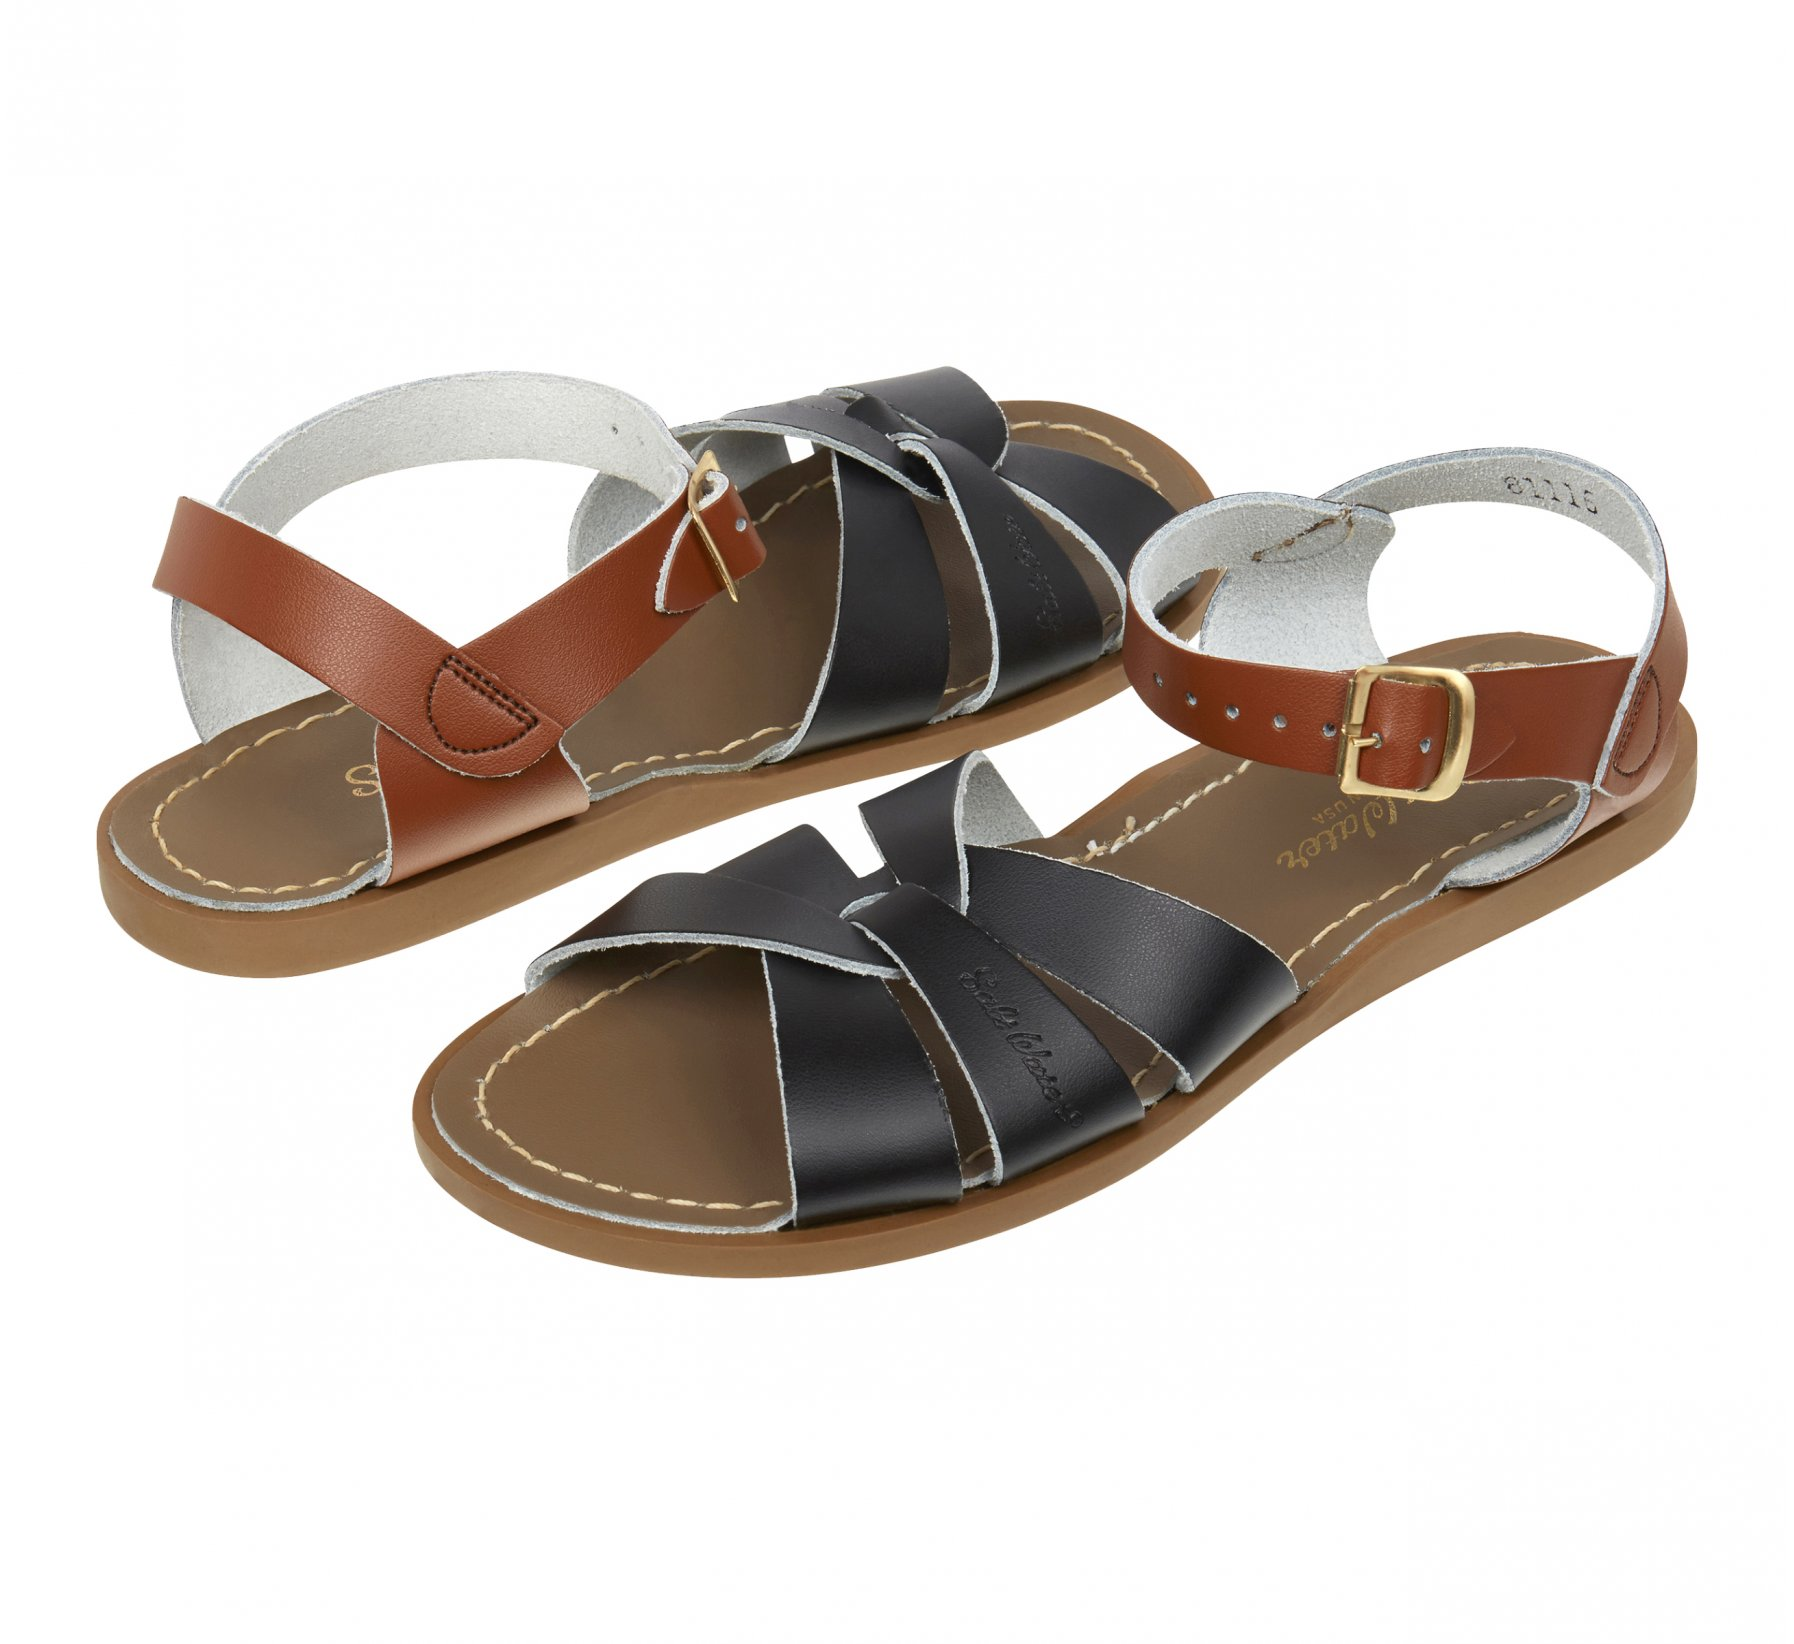 Original Mash-up Truffle - Salt Water Sandals